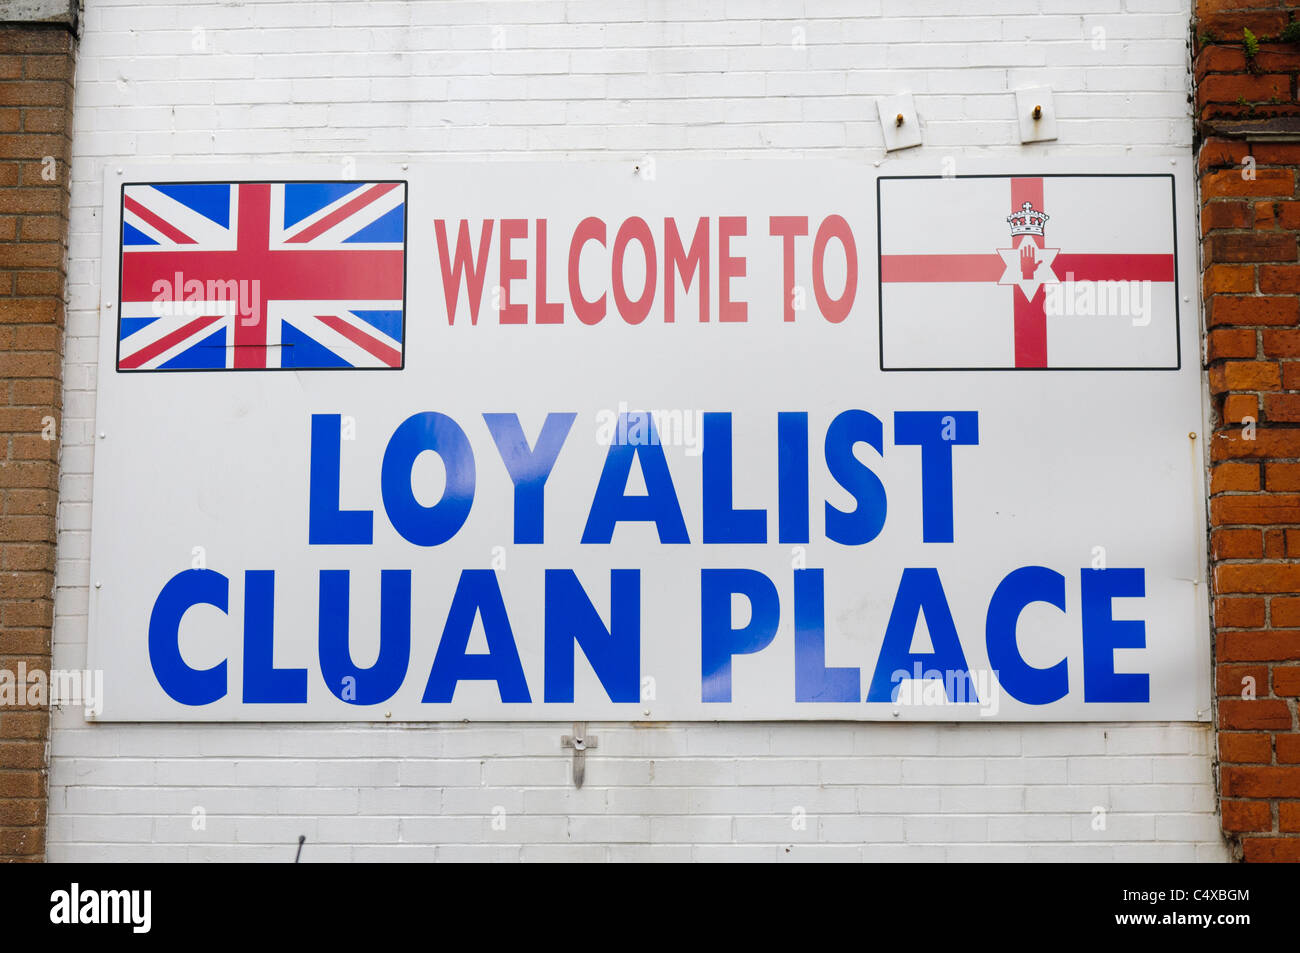 Sign 'Welcome to Loyalist Cluan Place' - Stock Image